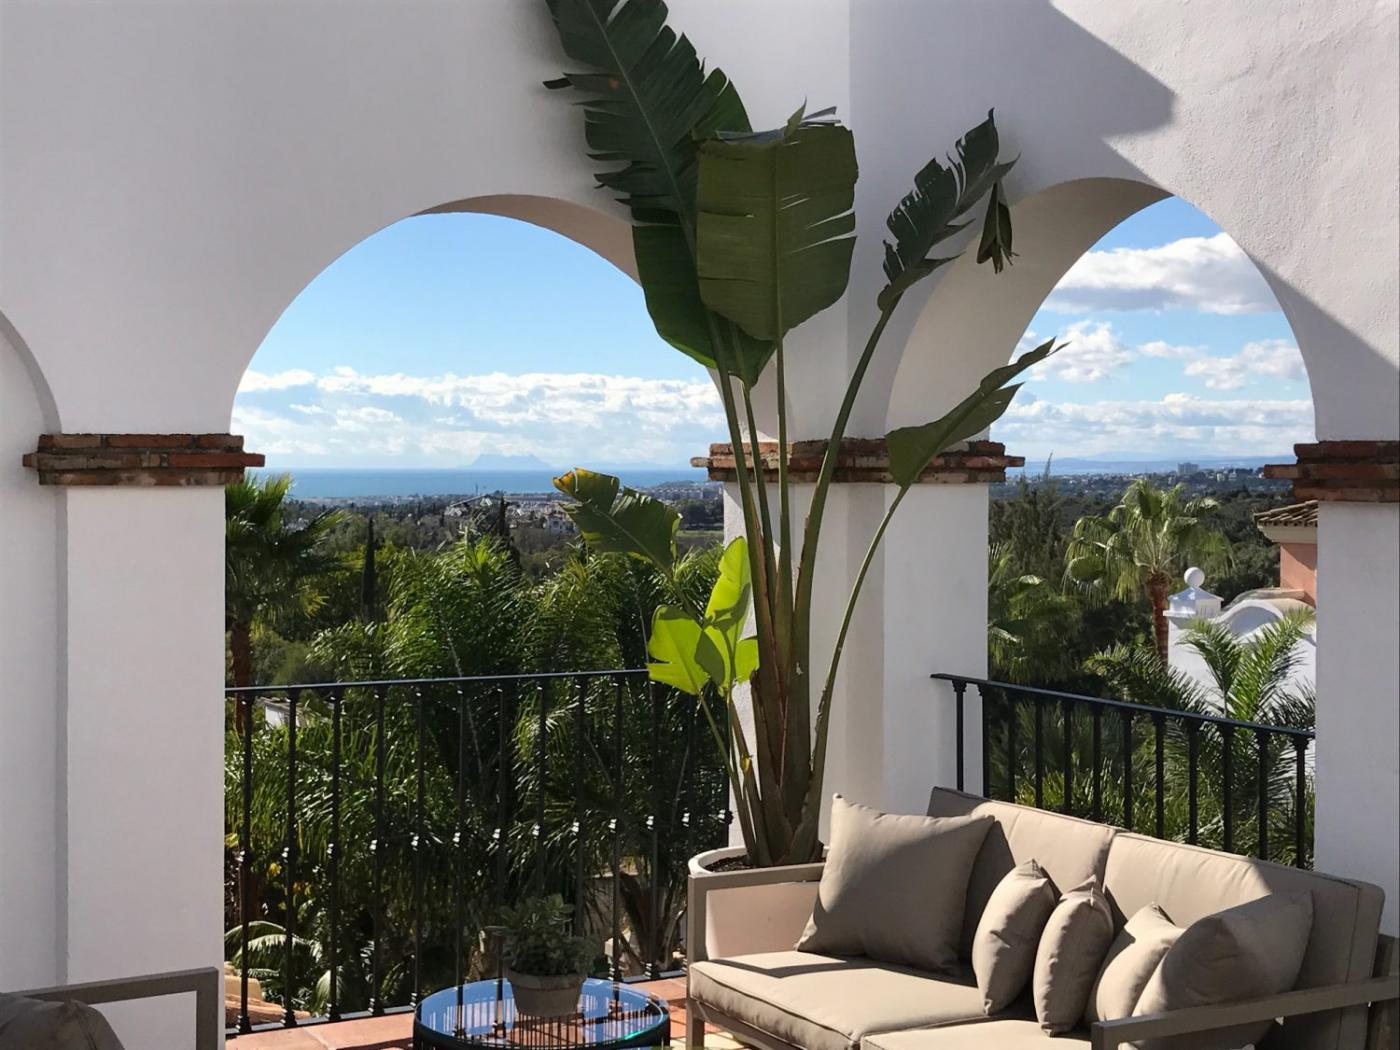 2 Bedroom Apartment for Sale in Marbella |